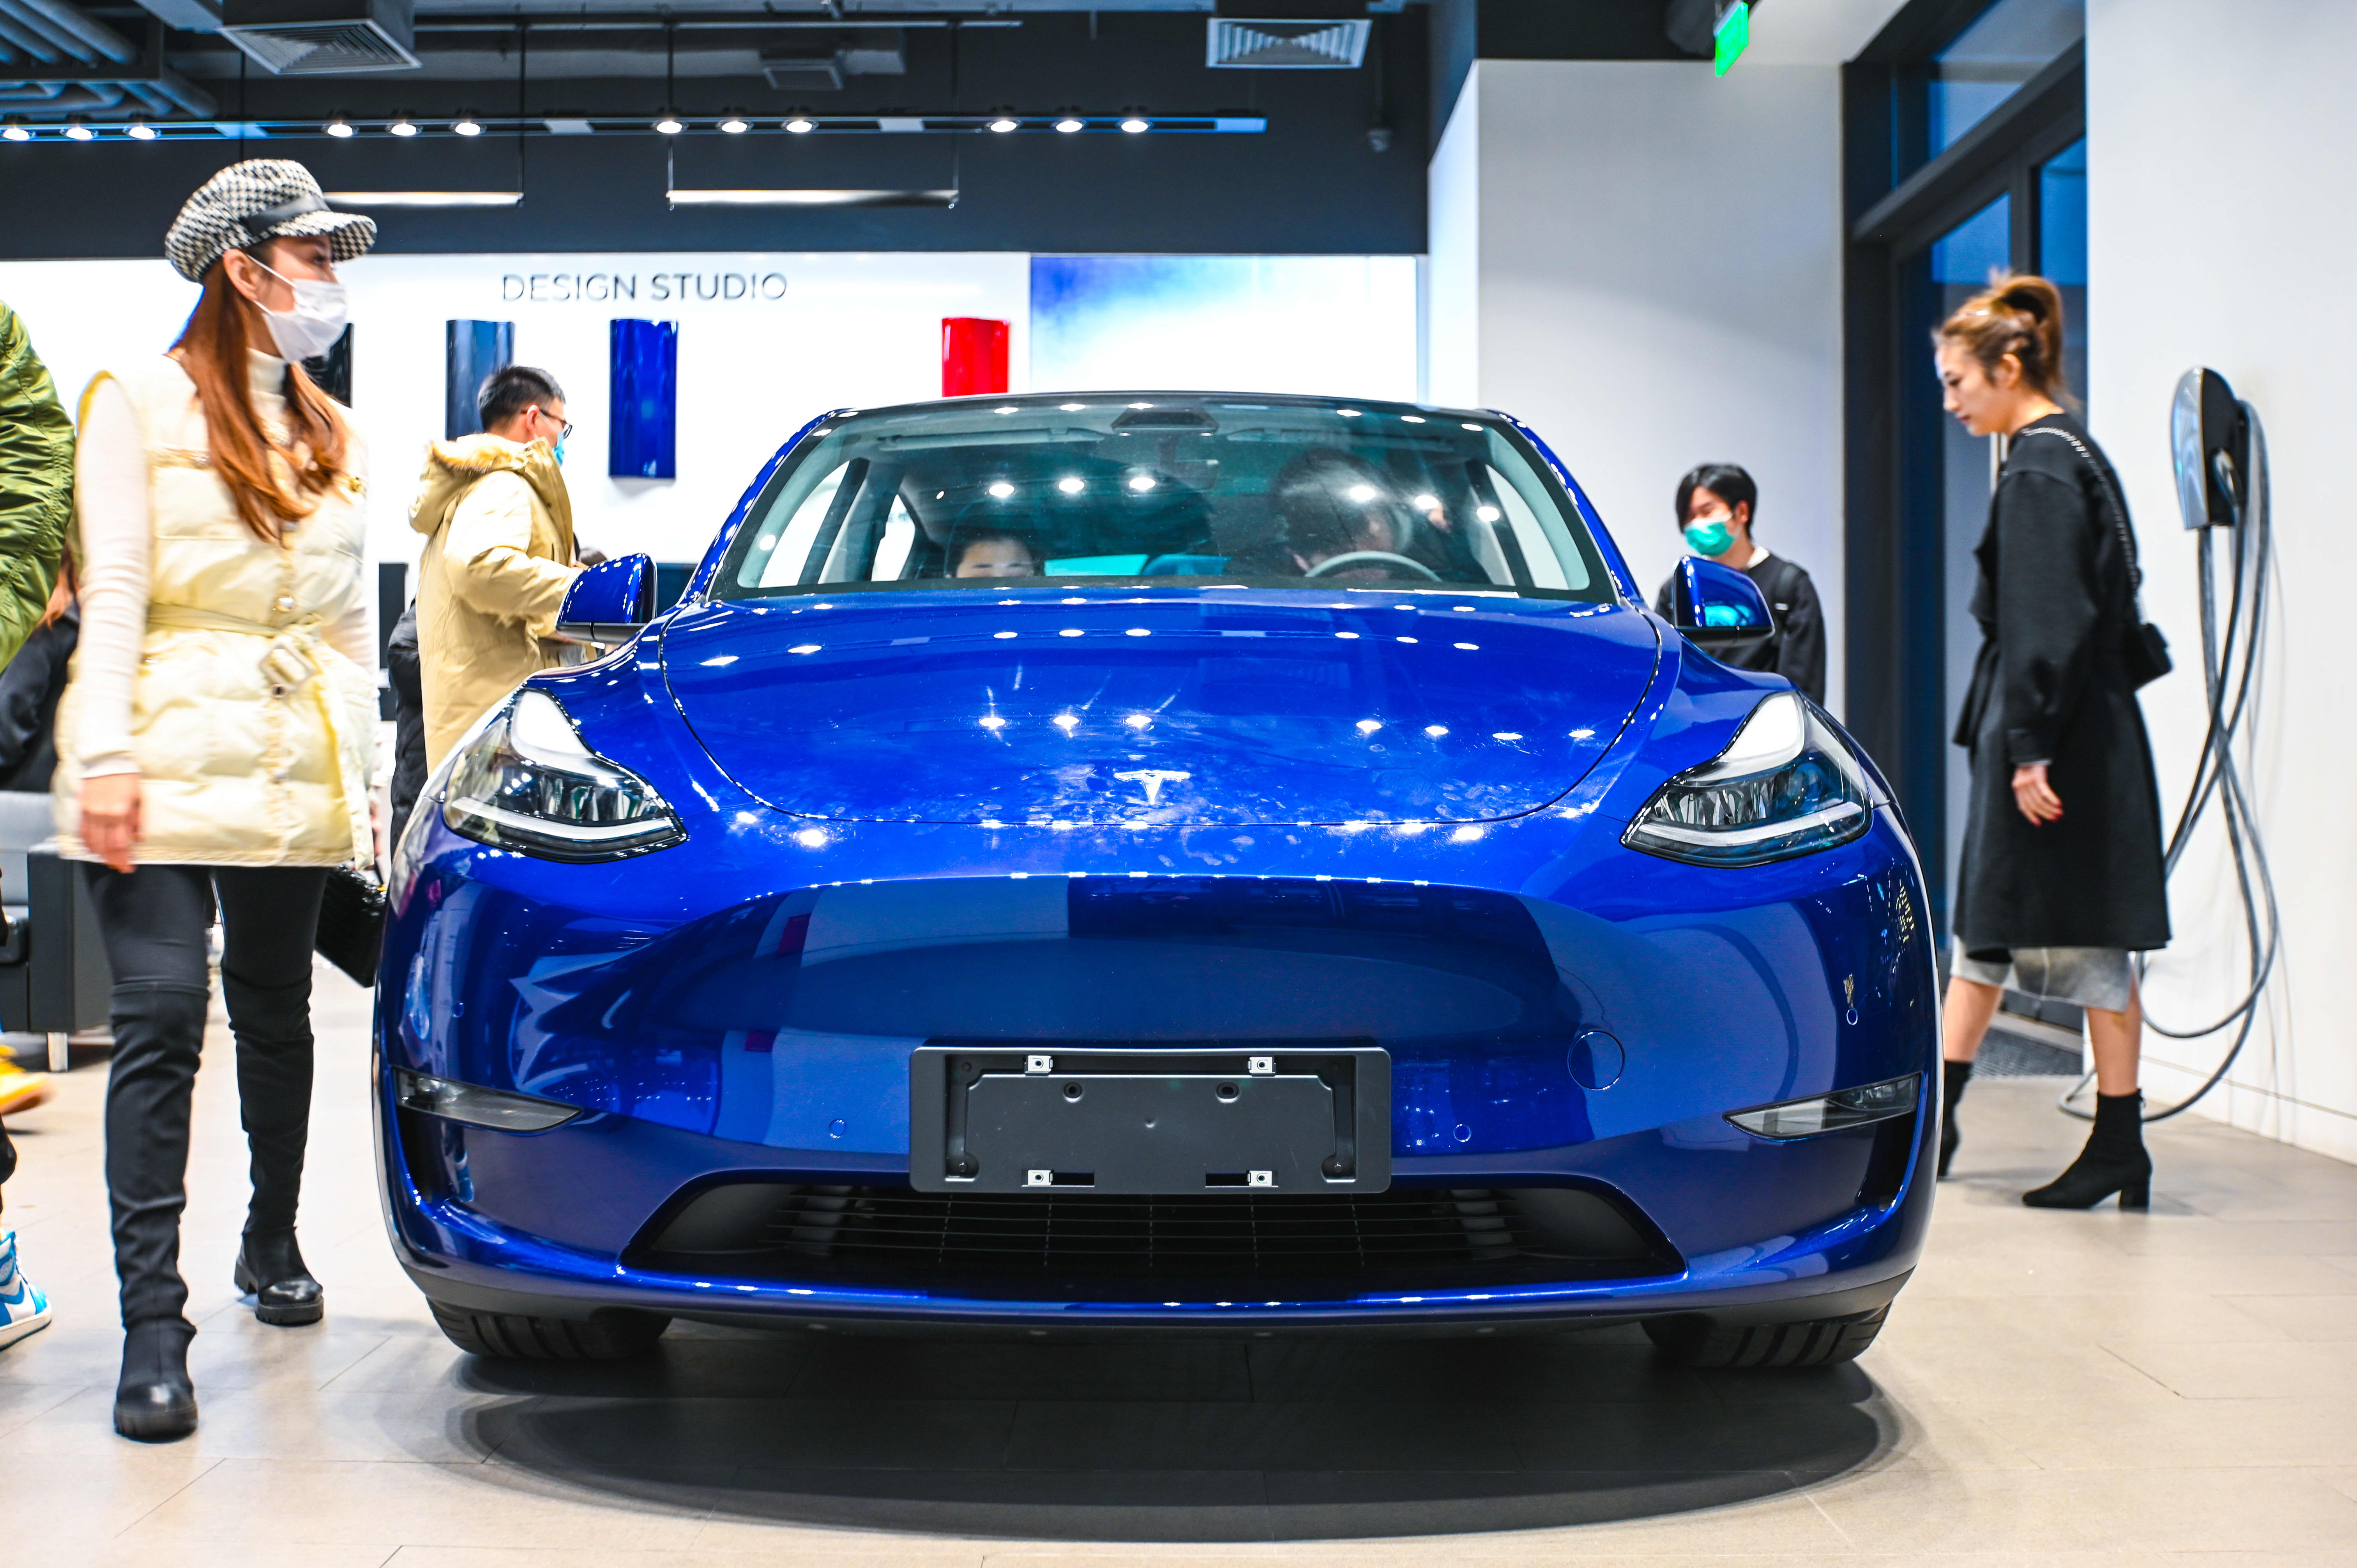 Tesla shares drop on report of steep May sales decline in China – CNBC